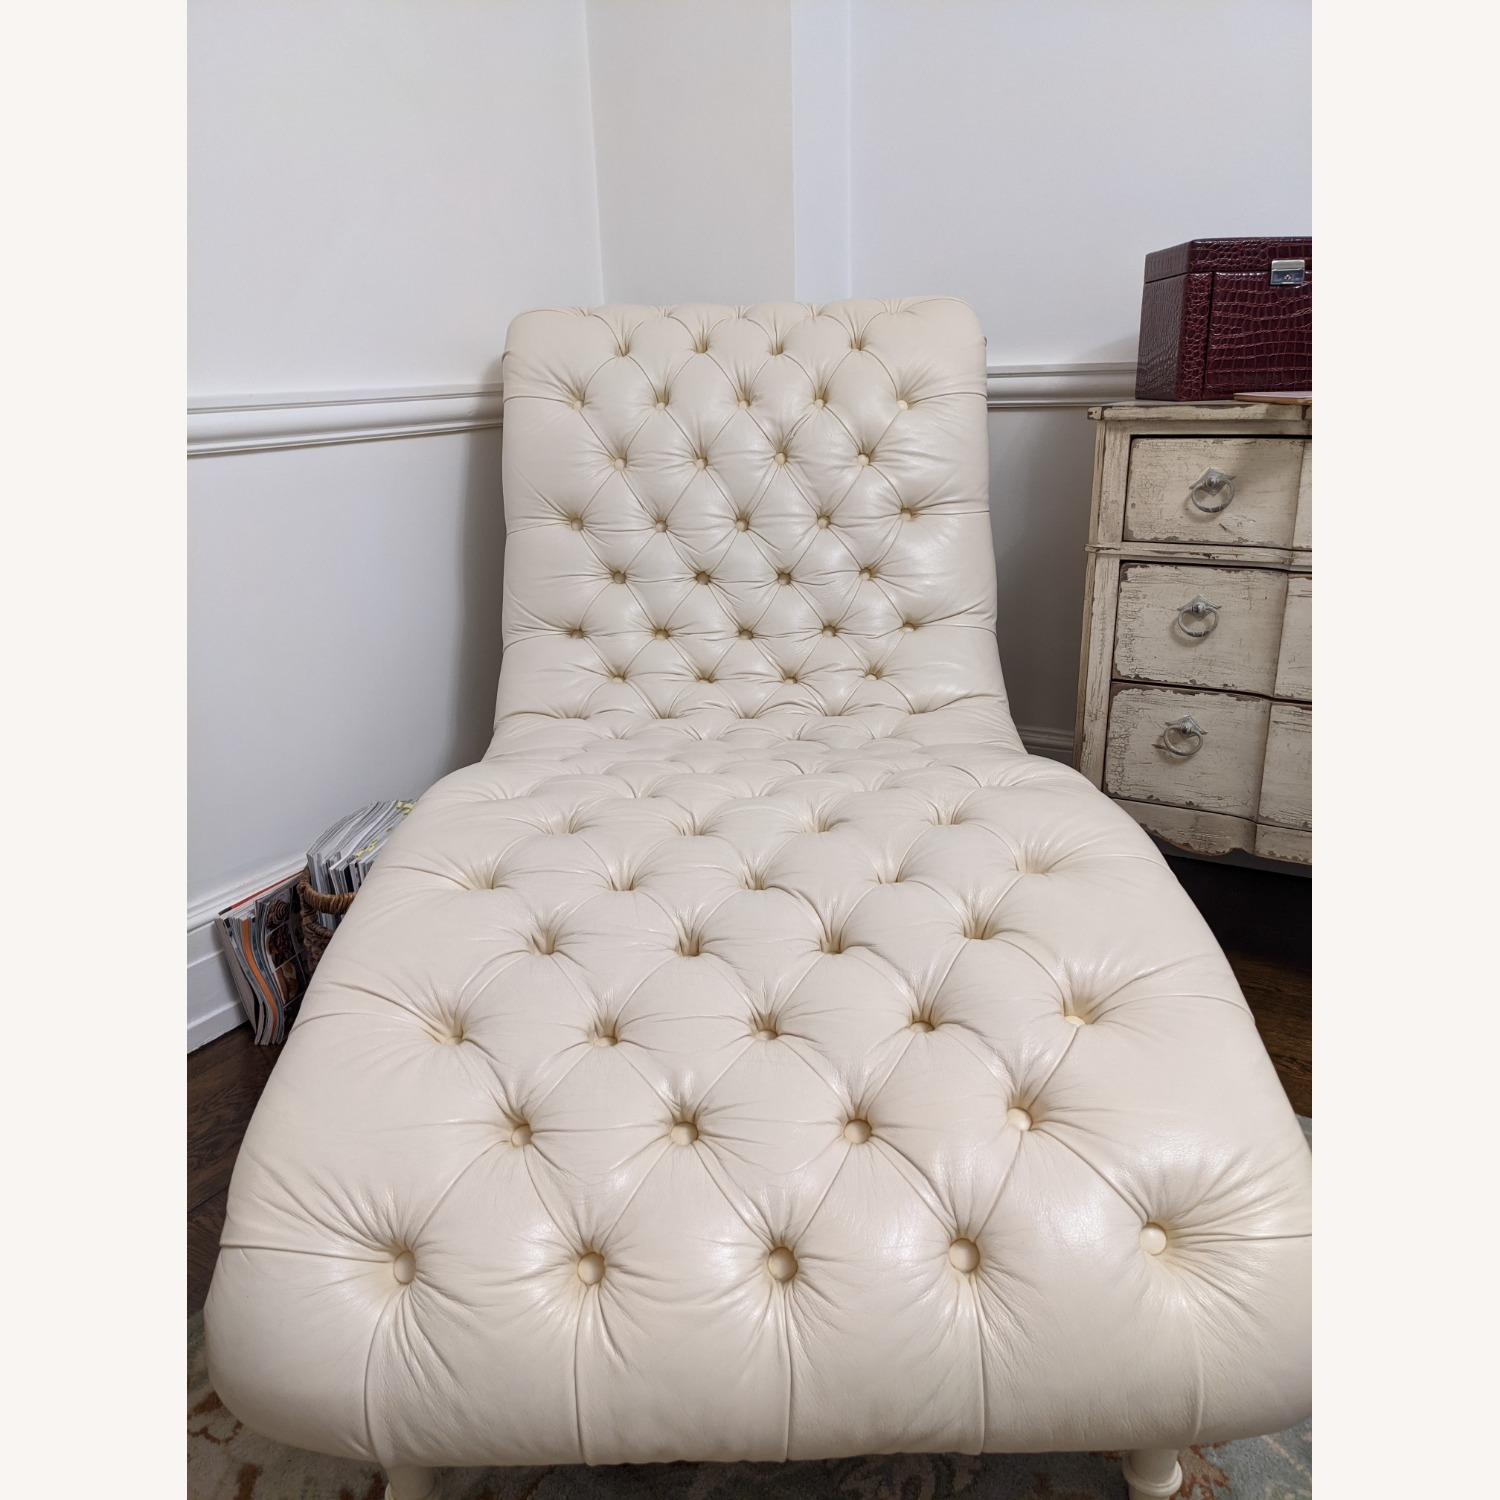 Ethan Allen Leather Chaise Long - image-12